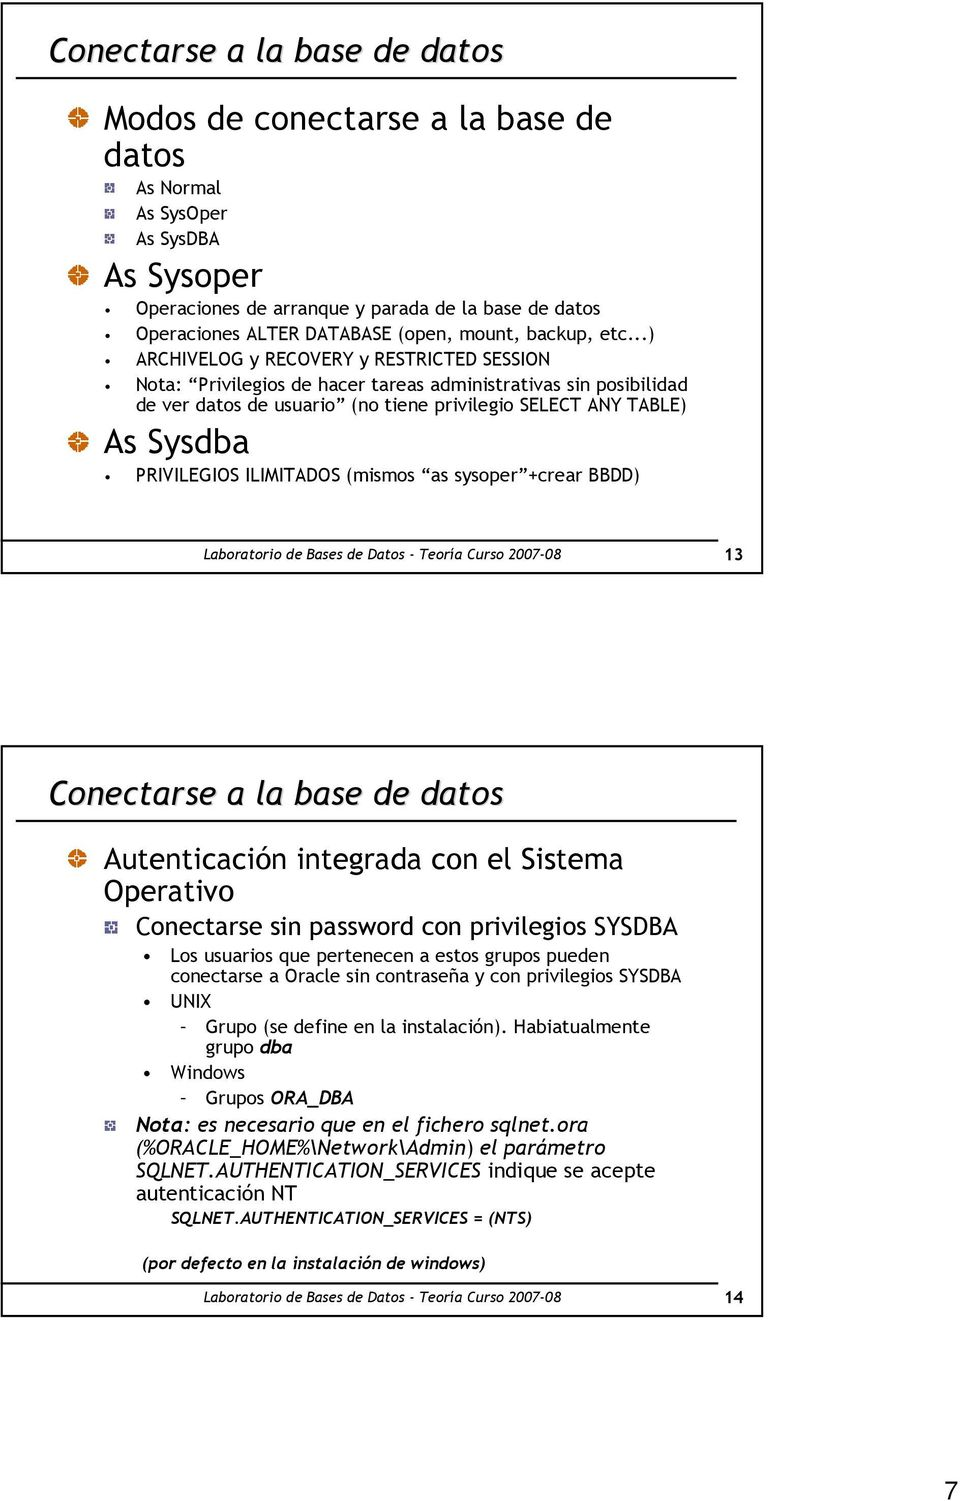 ..) ARCHIVELOG y RECOVERY y RESTRICTED SESSION Nota: Privilegios de hacer tareas administrativas sin posibilidad de ver datos de usuario (no tiene privilegio SELECT ANY TABLE) As Sysdba PRIVILEGIOS